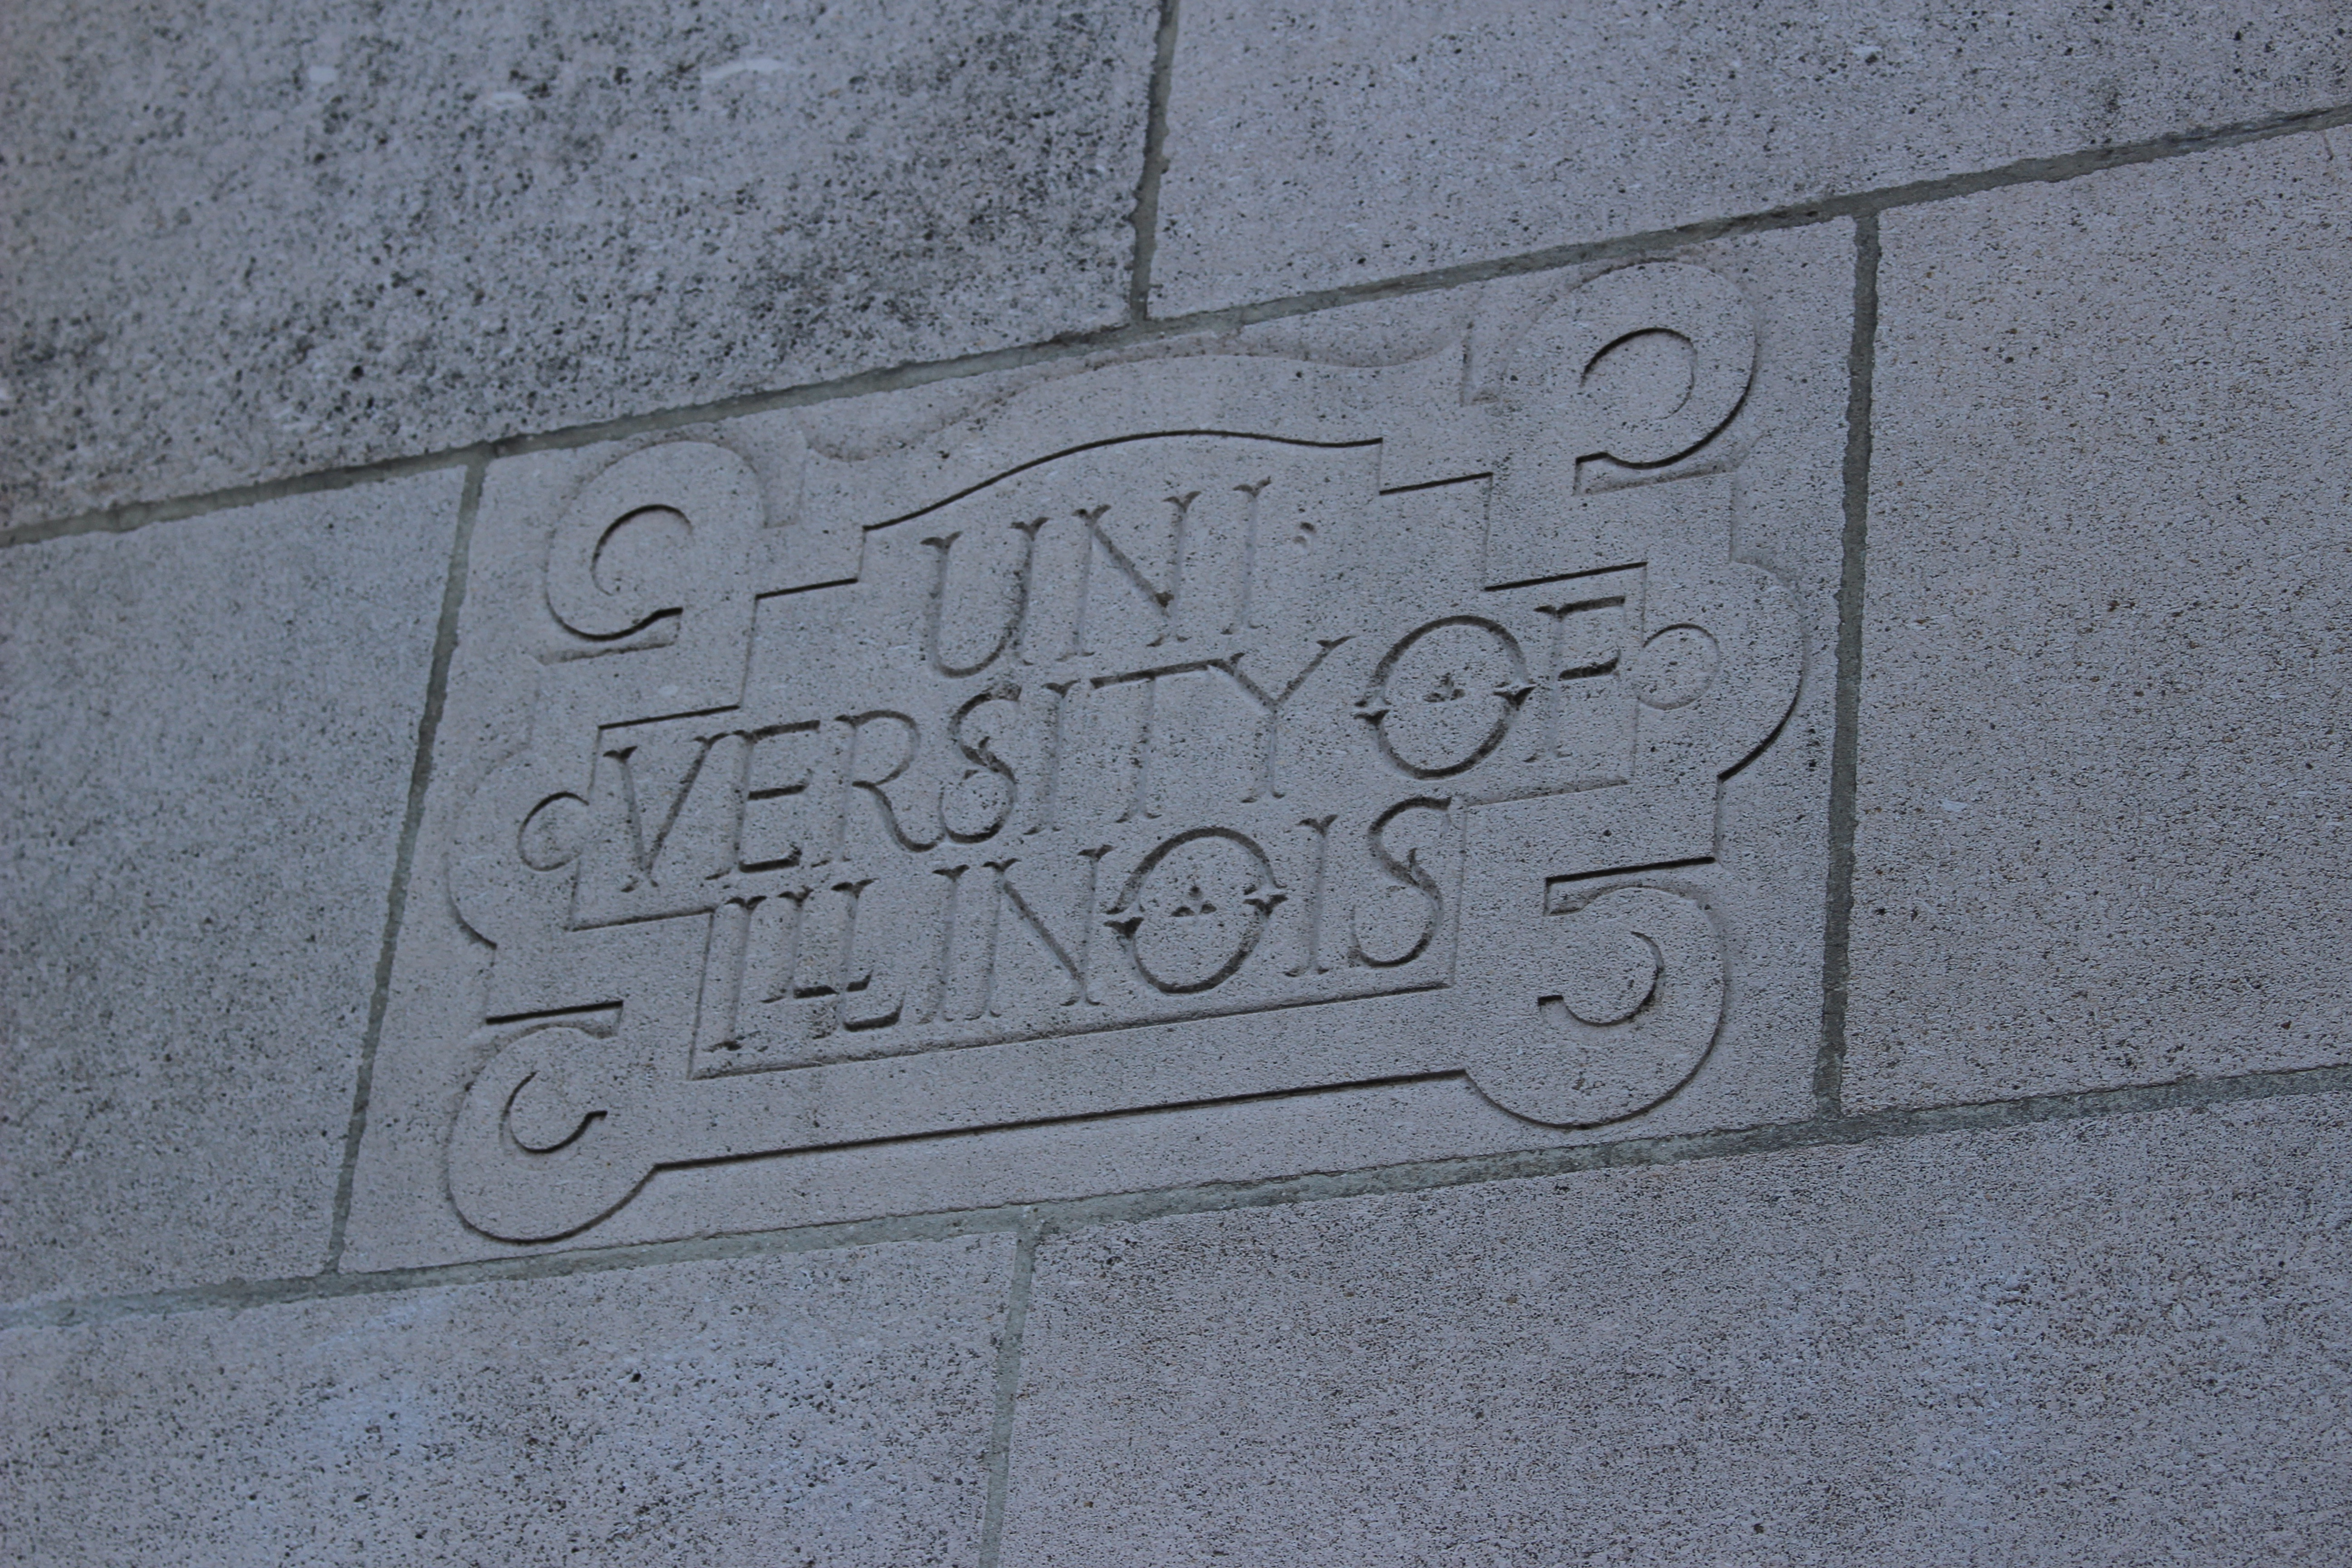 University of Illinois Engraving